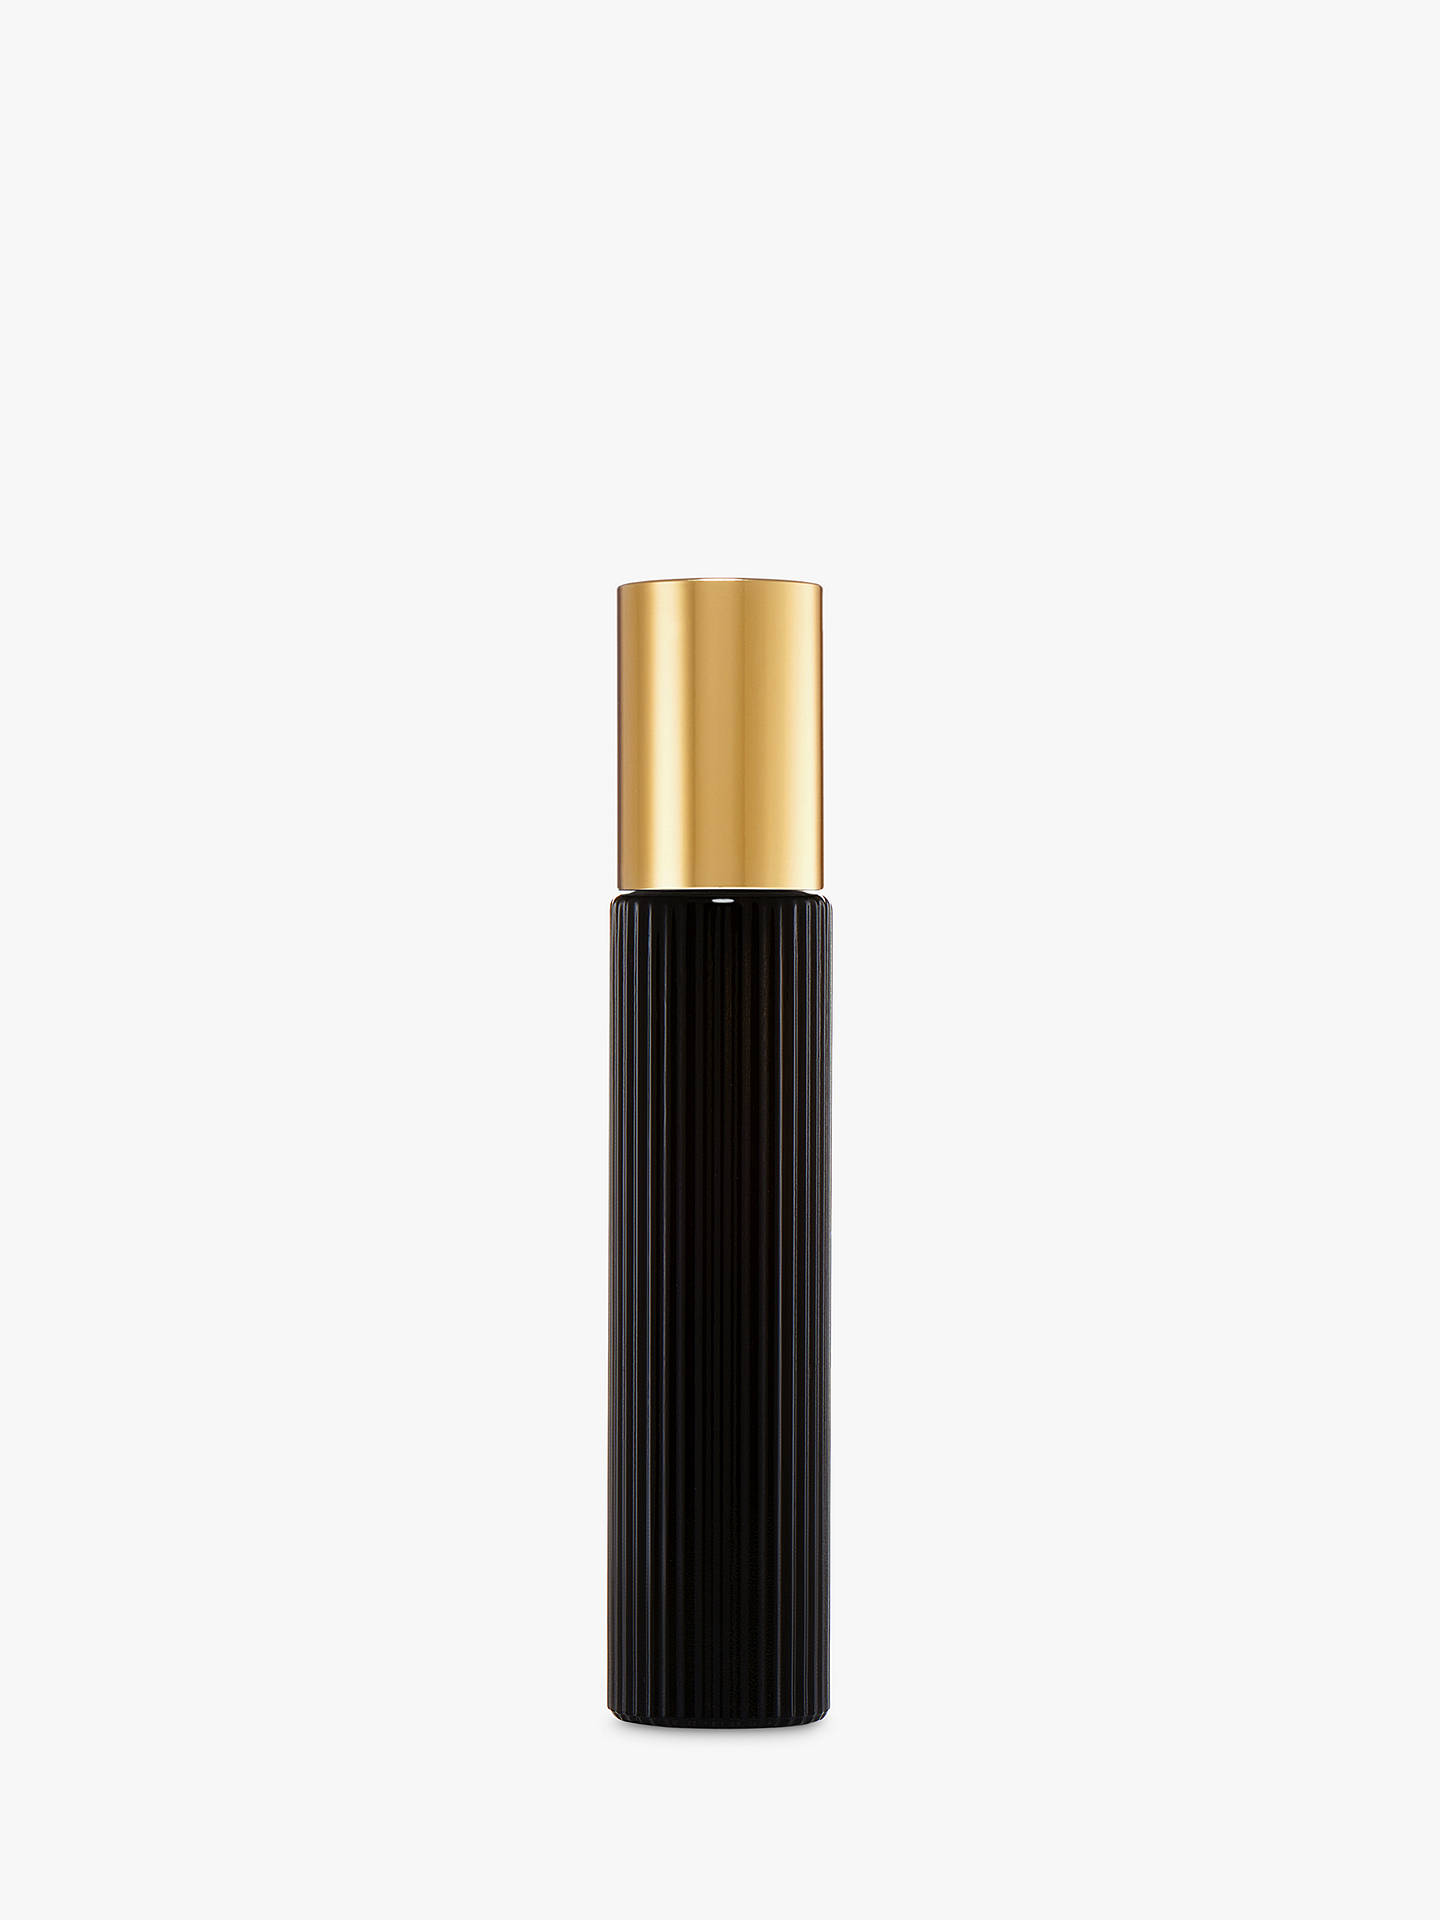 Buy TOM FORD Noir Extreme Travel Spray, 10ml Online at johnlewis.com